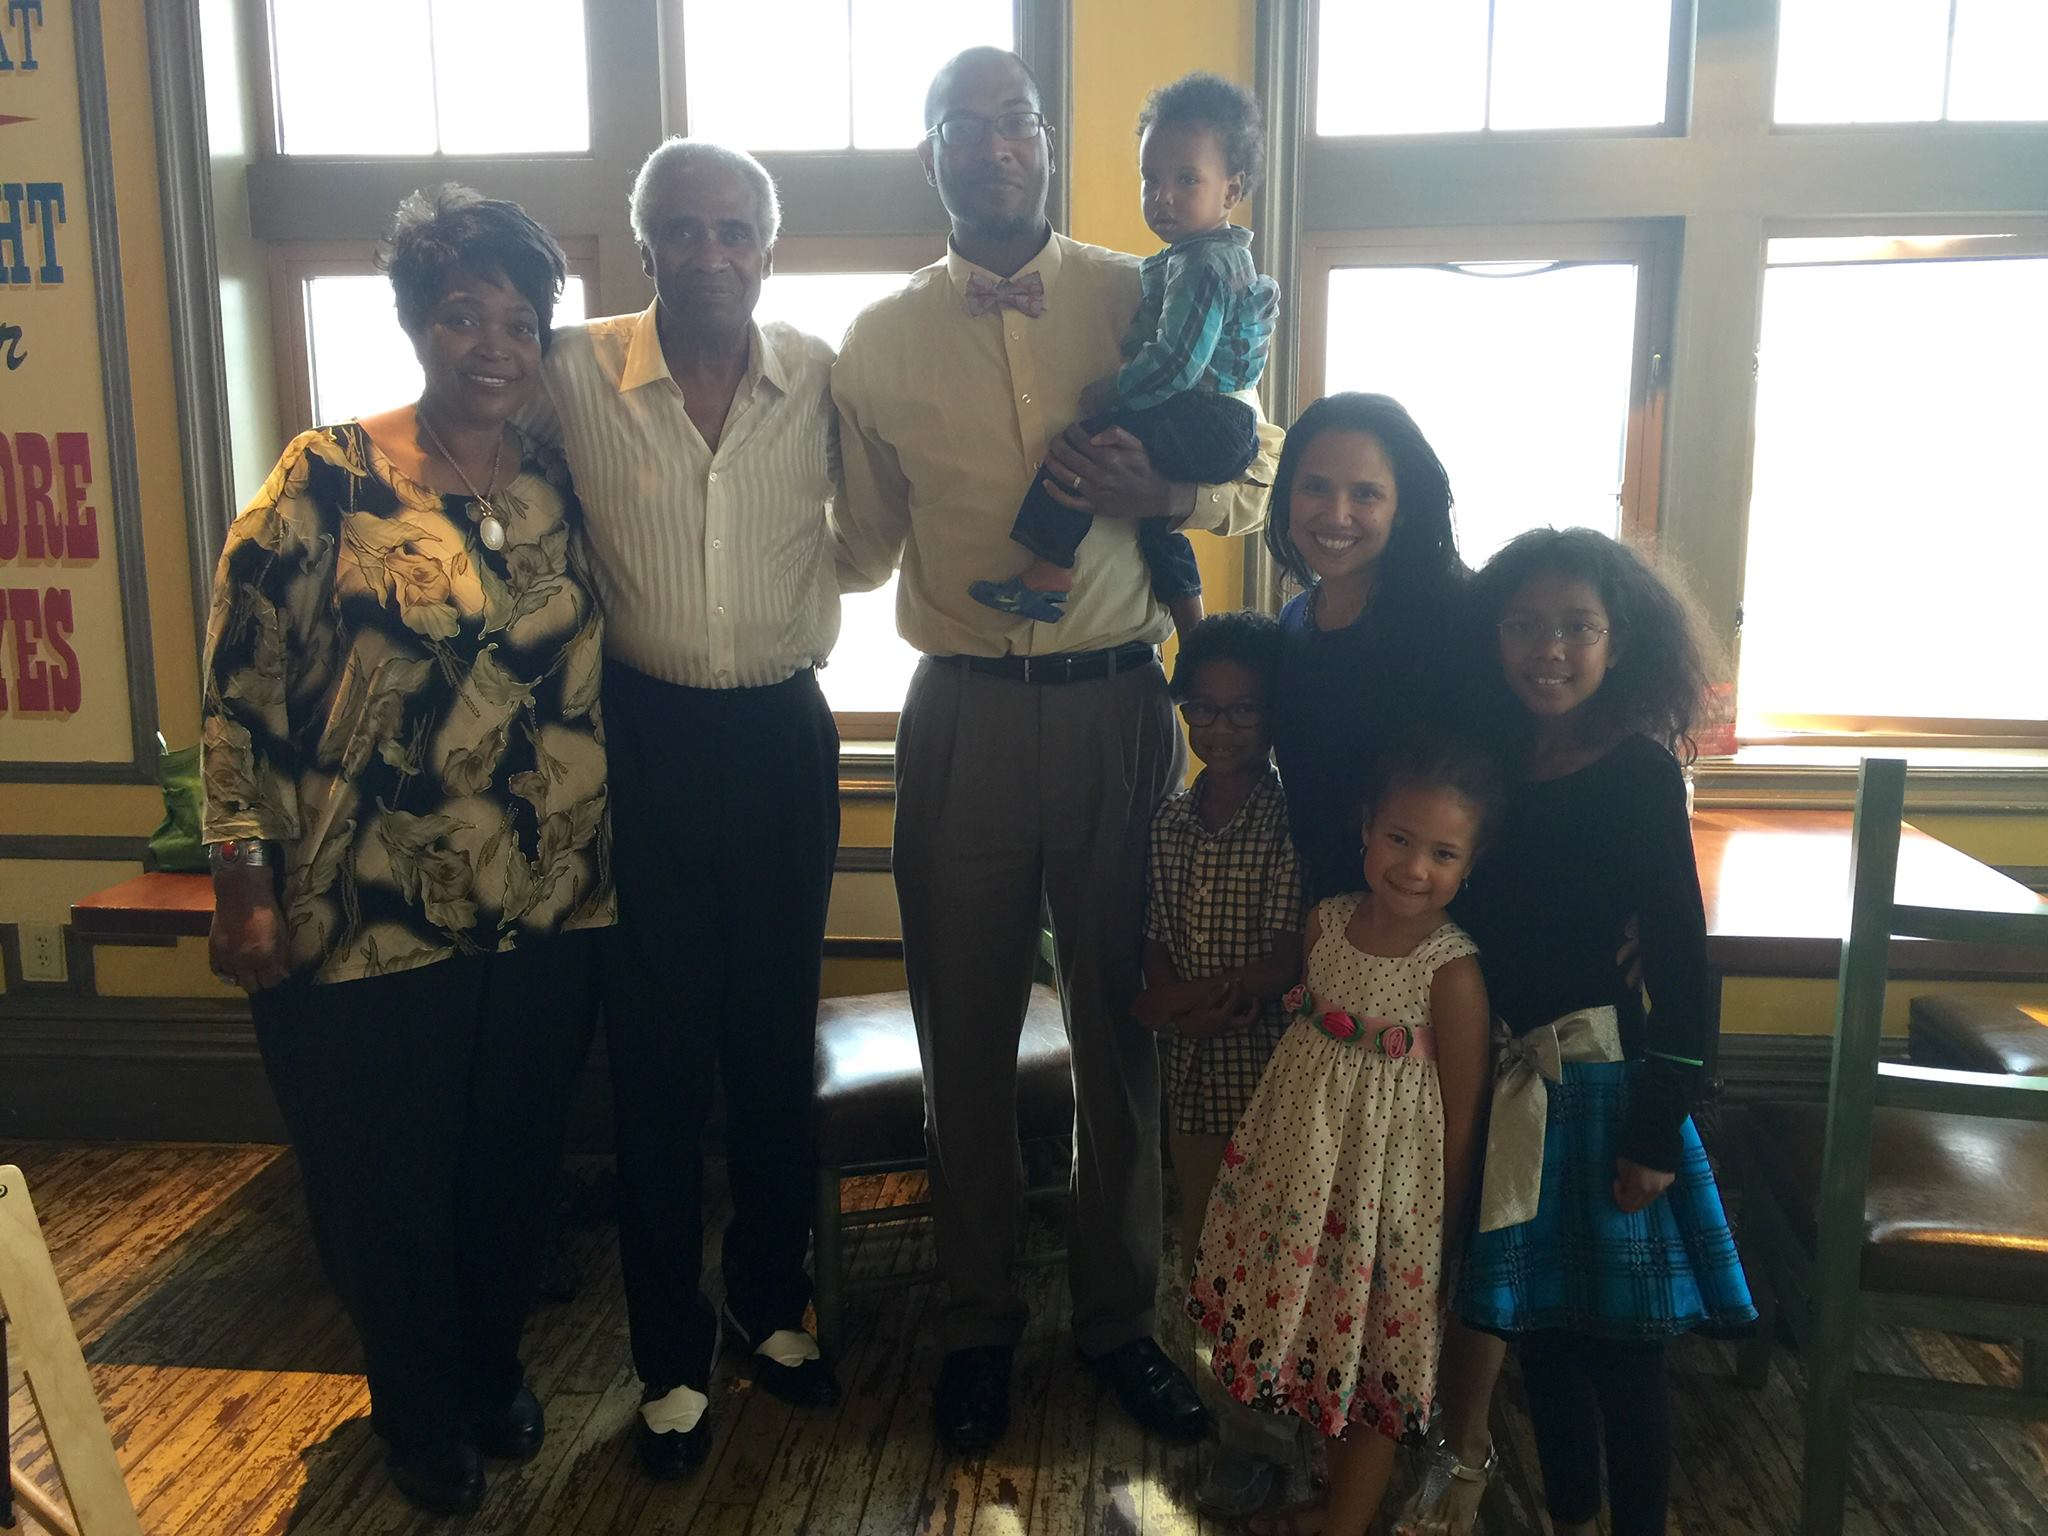 lamar with his family